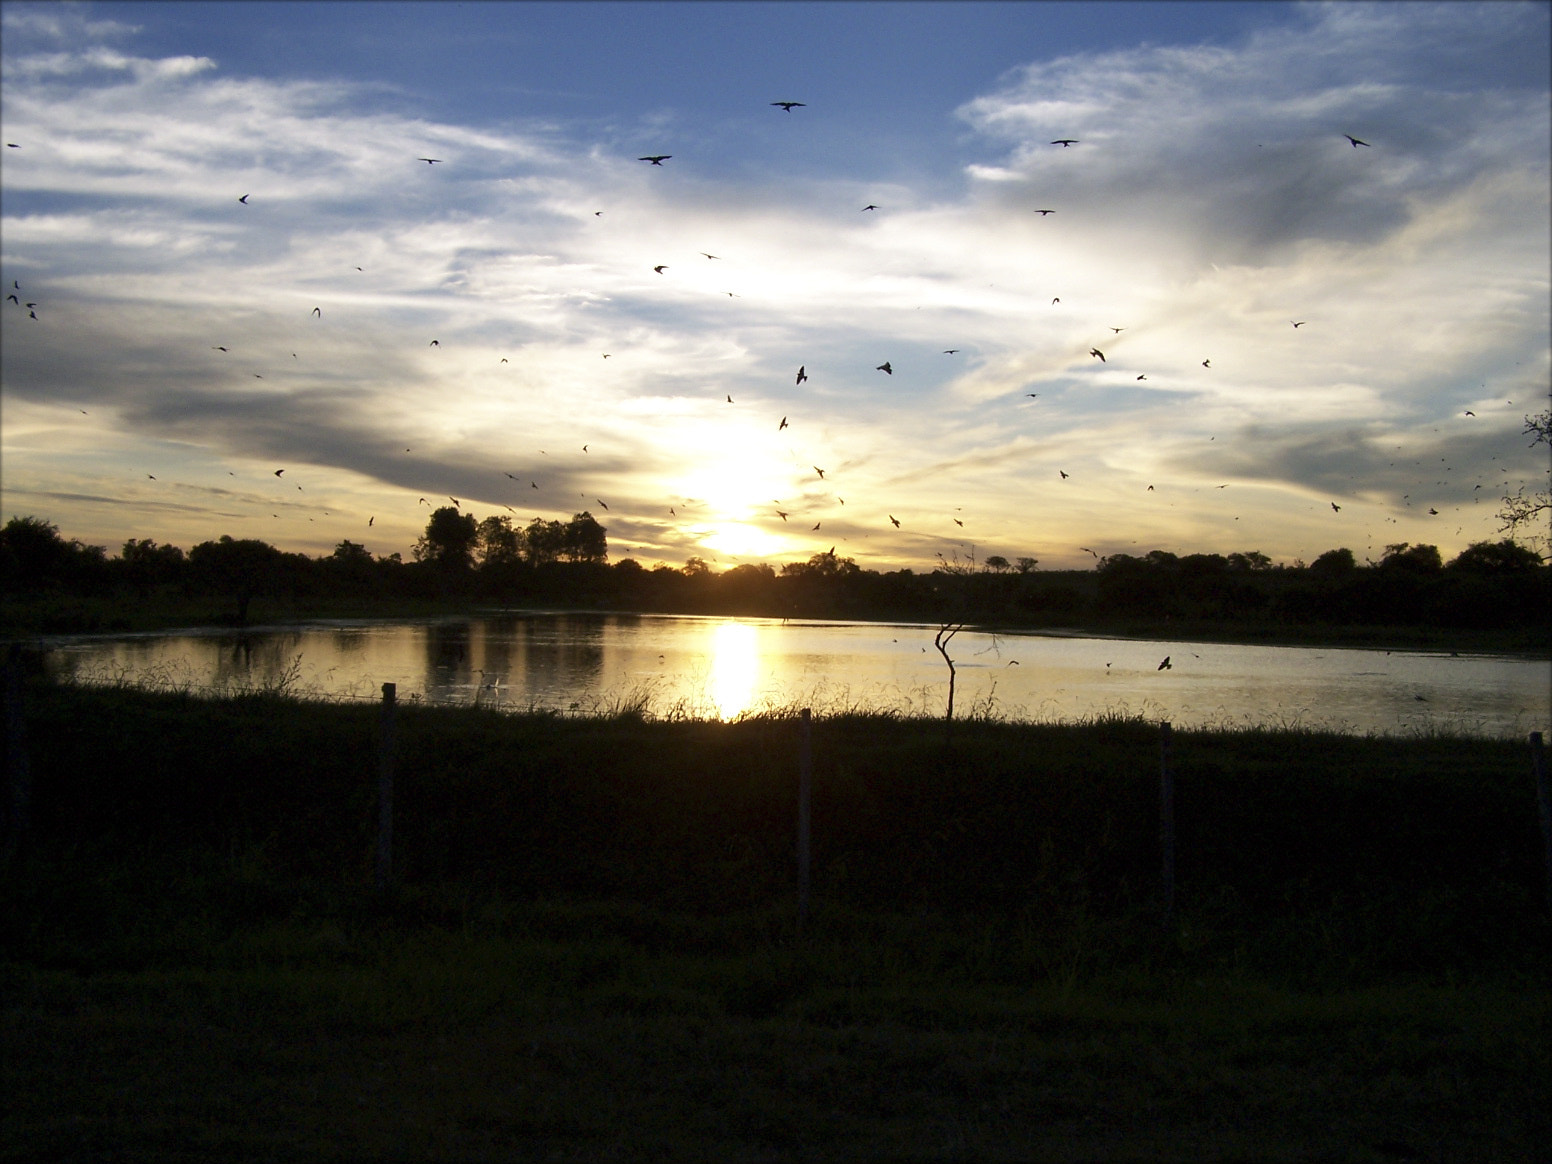 Photograph Swallows over the lake at sunset. by Edgar Salgado on 500px